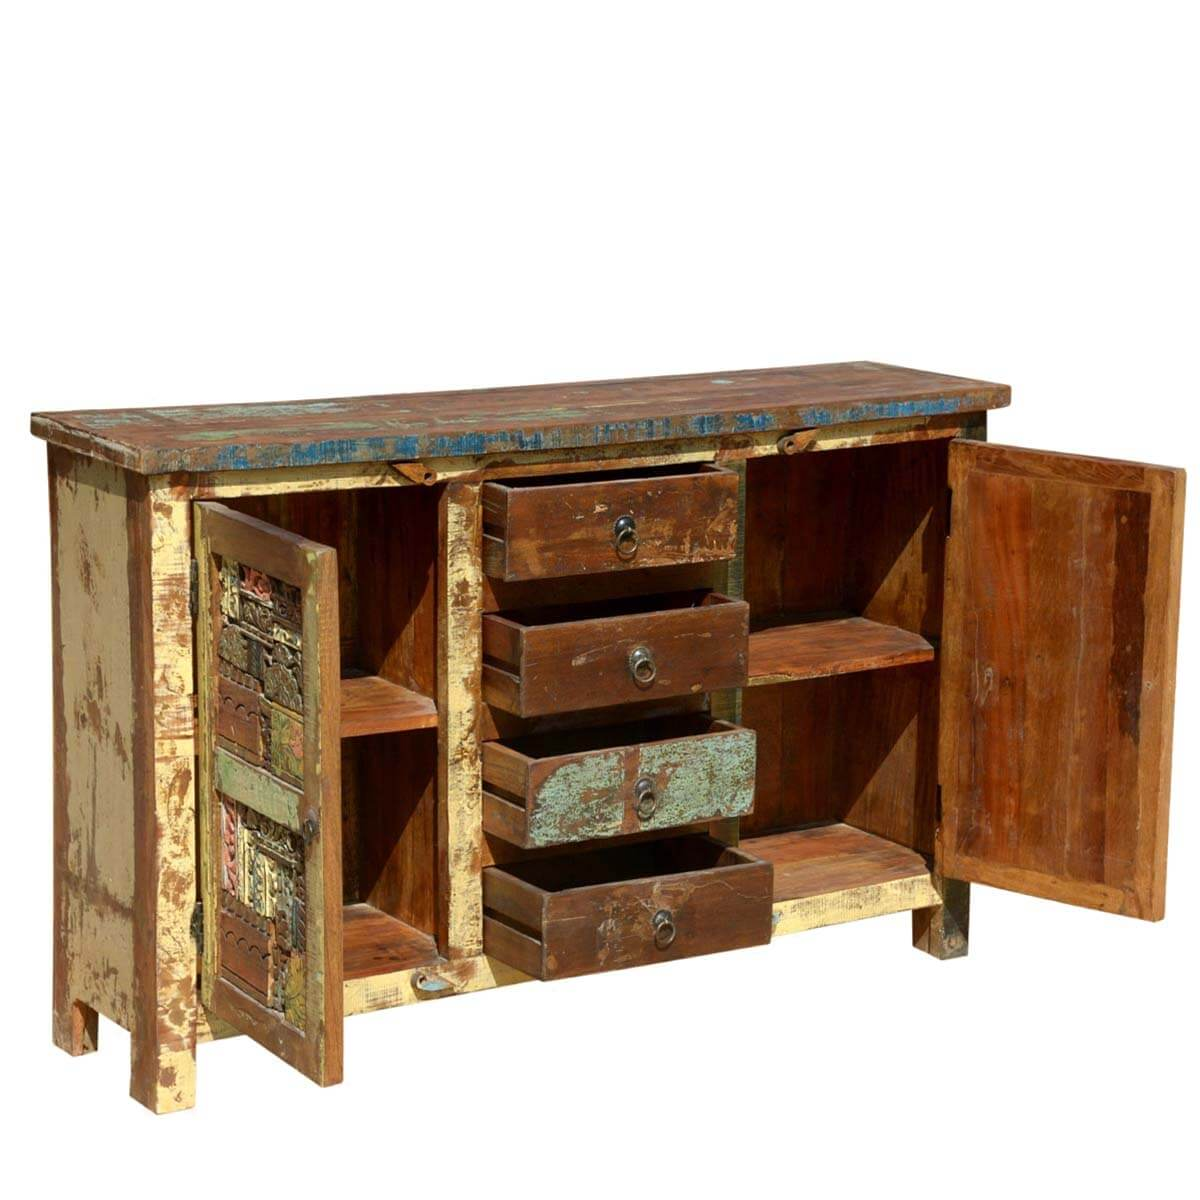 Reclaimed Wooden Mosaic Rustic Sideboard Buffet Cabinet. Tile Expo. Adding On To Your House. 4seating. Printed Curtains. Low Maintenance Grass. Nautical Kitchen. Erie Construction. Kitchen Cabinet Pictures